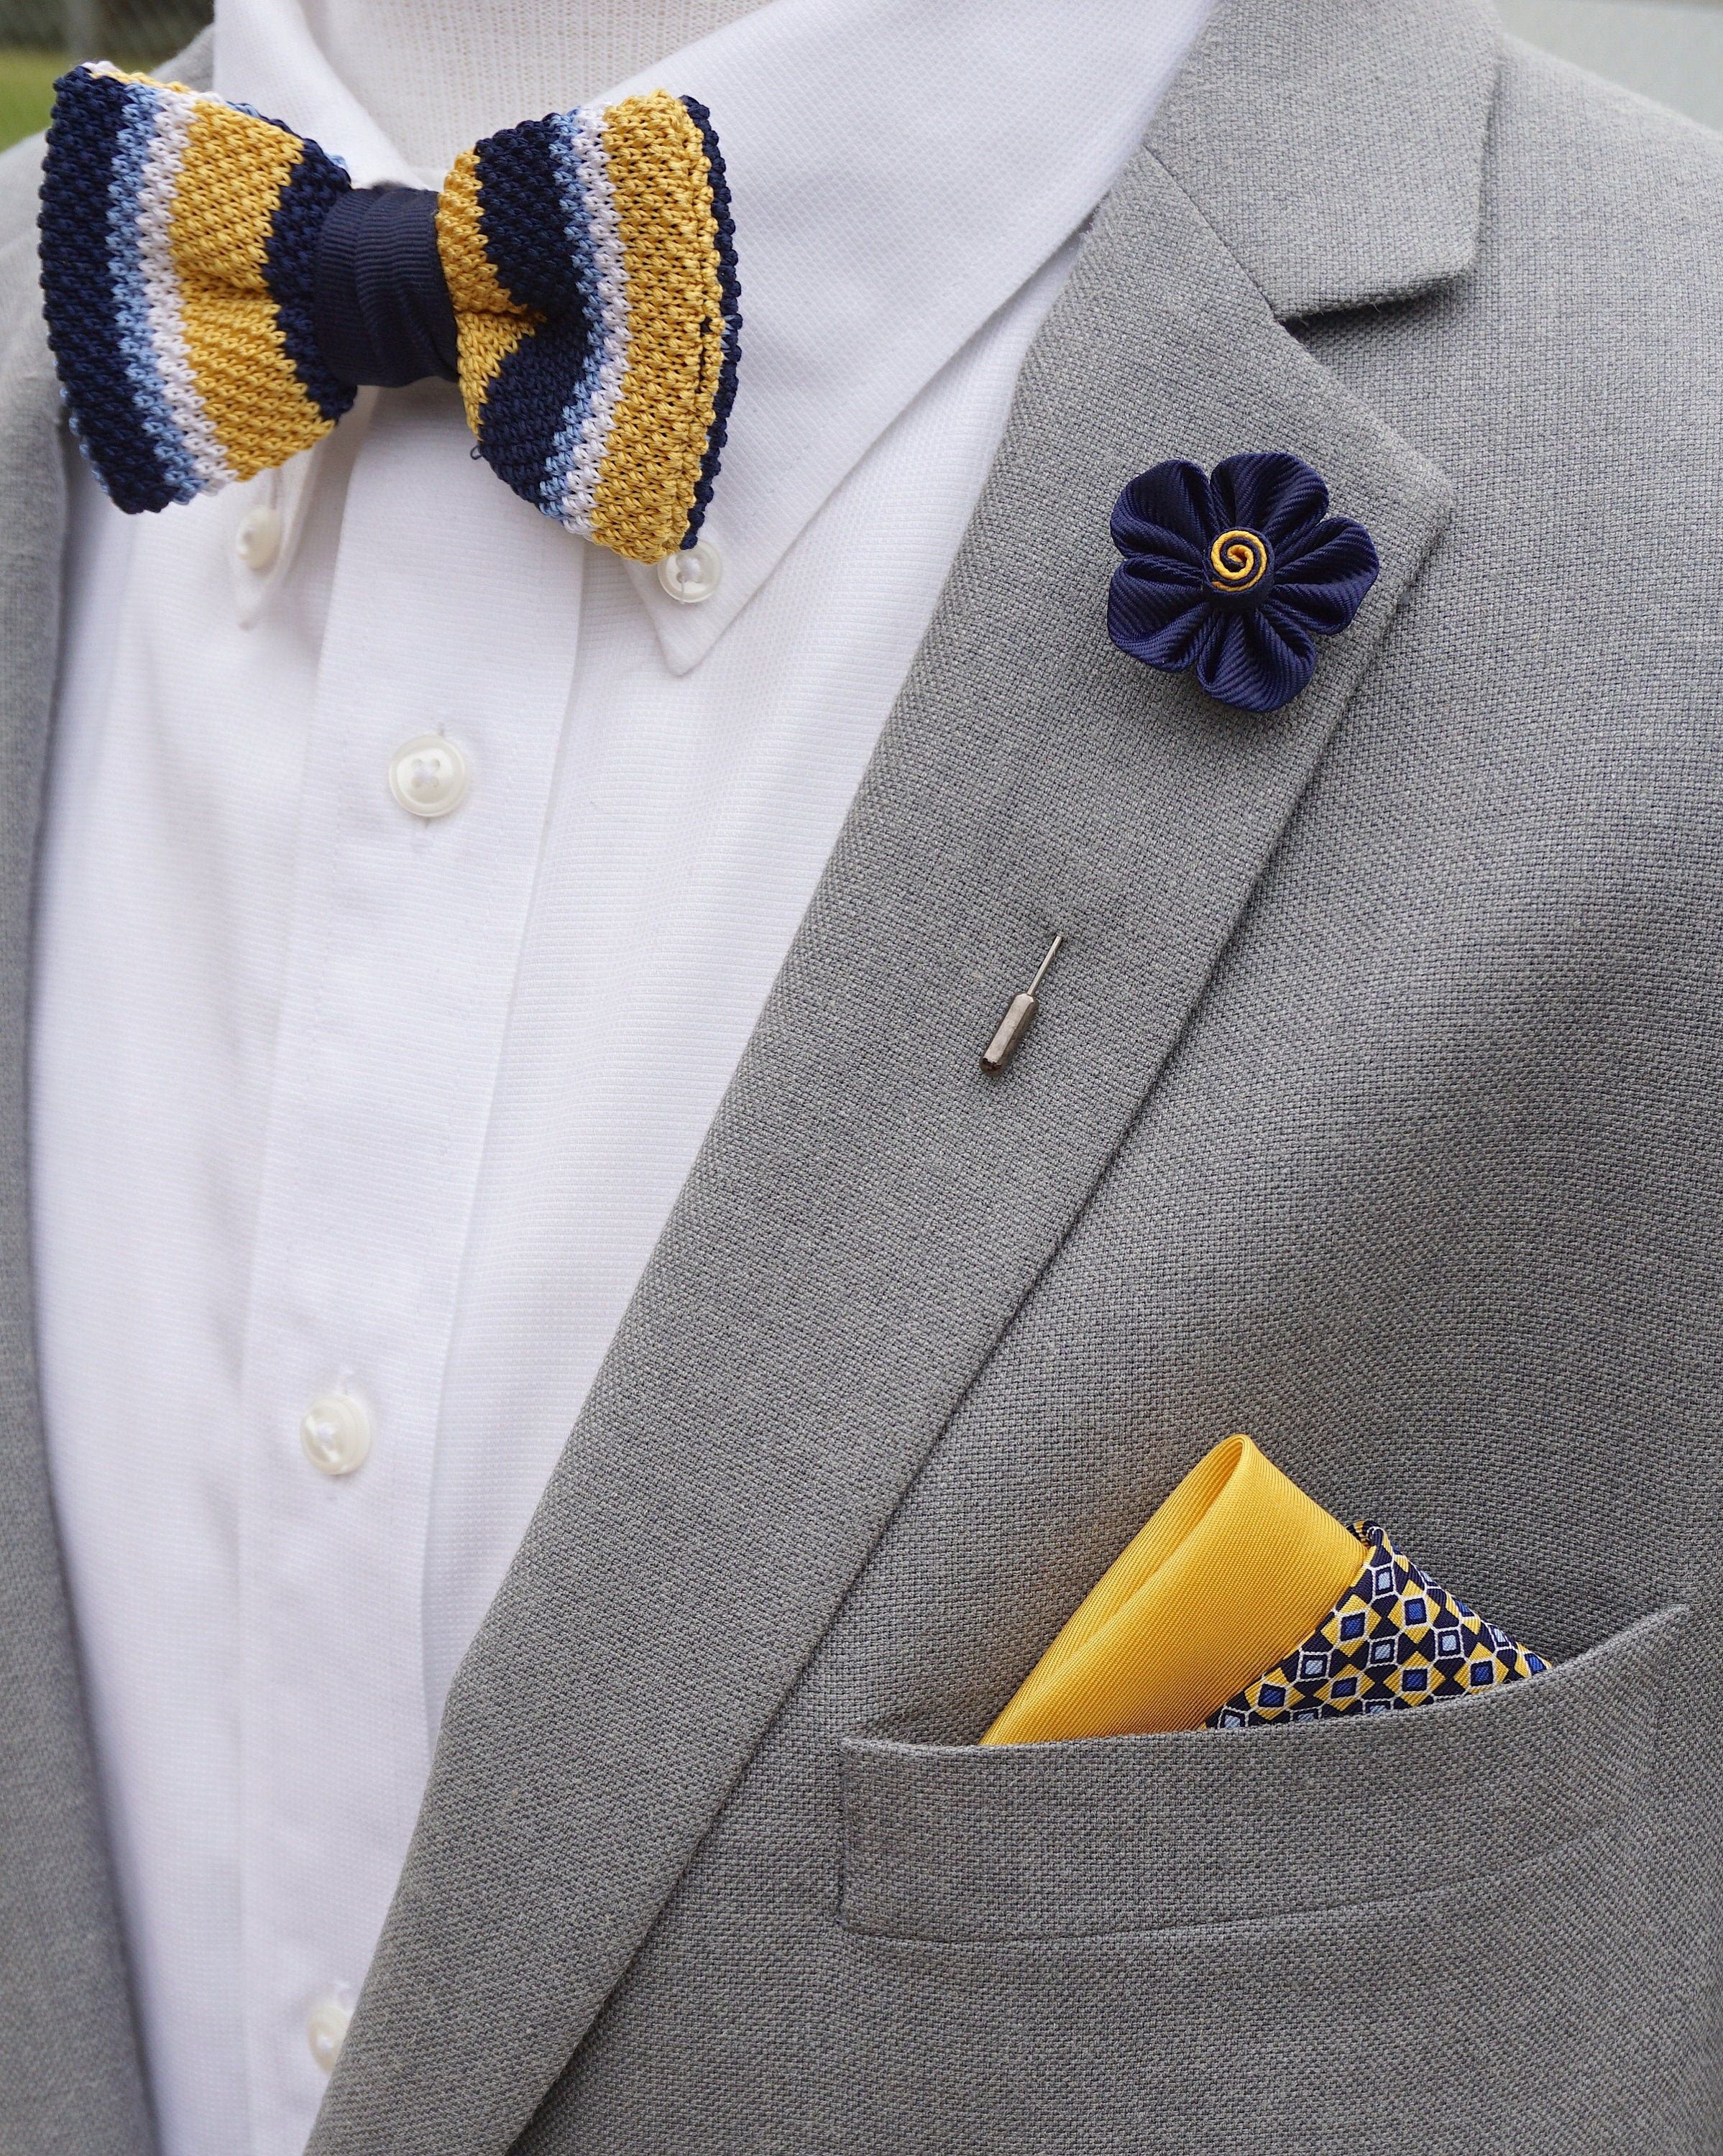 Handmade Flower Lapel Paired with Daniel Cremieux Bowtie & Multi-Patterned Pocket Square Set